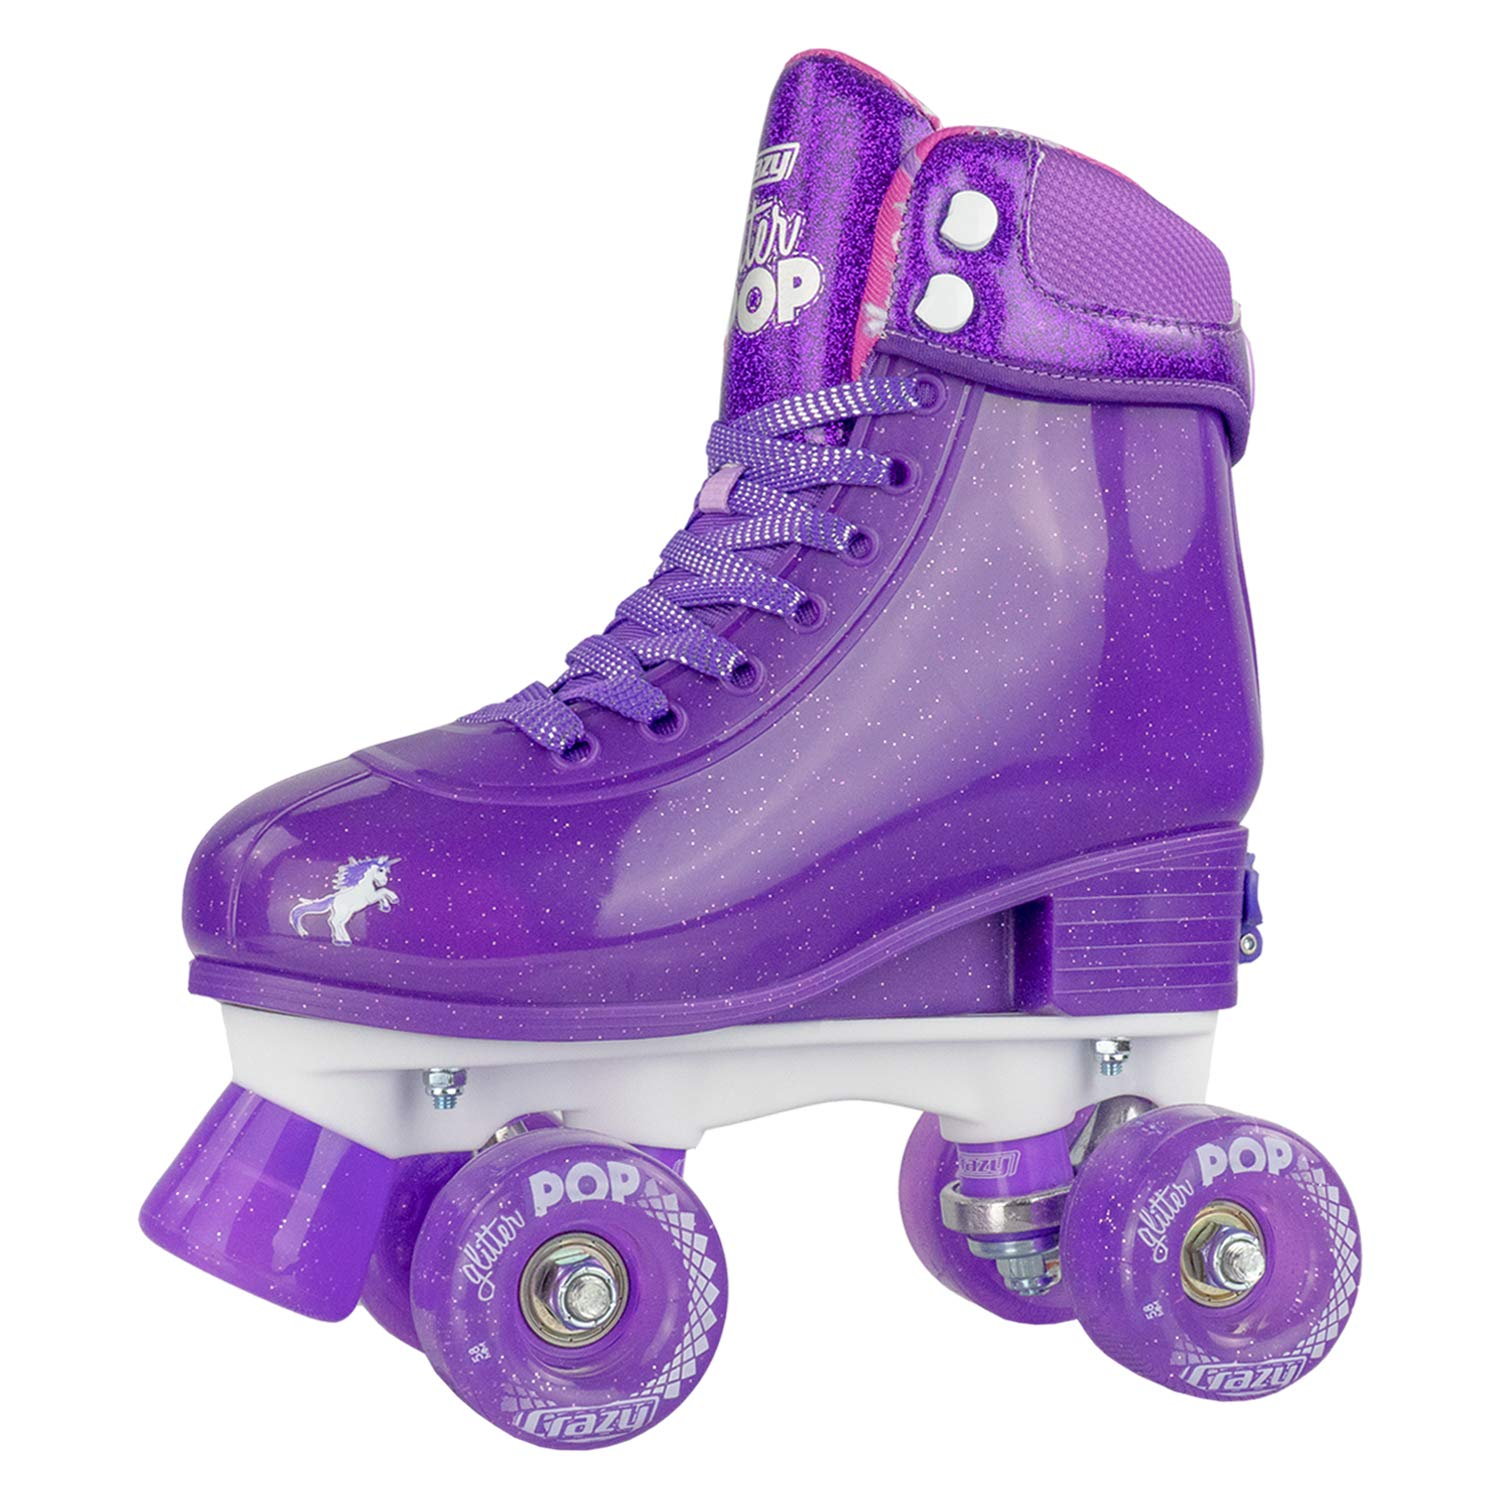 Crazy Skates Glitter POP Adjustable Roller Skates for Girls and Boys | Size Adjustable Quad Skates That Fit 4 Shoe Sizes | Purple (Sizes 3-6) by Crazy Skates (Image #1)